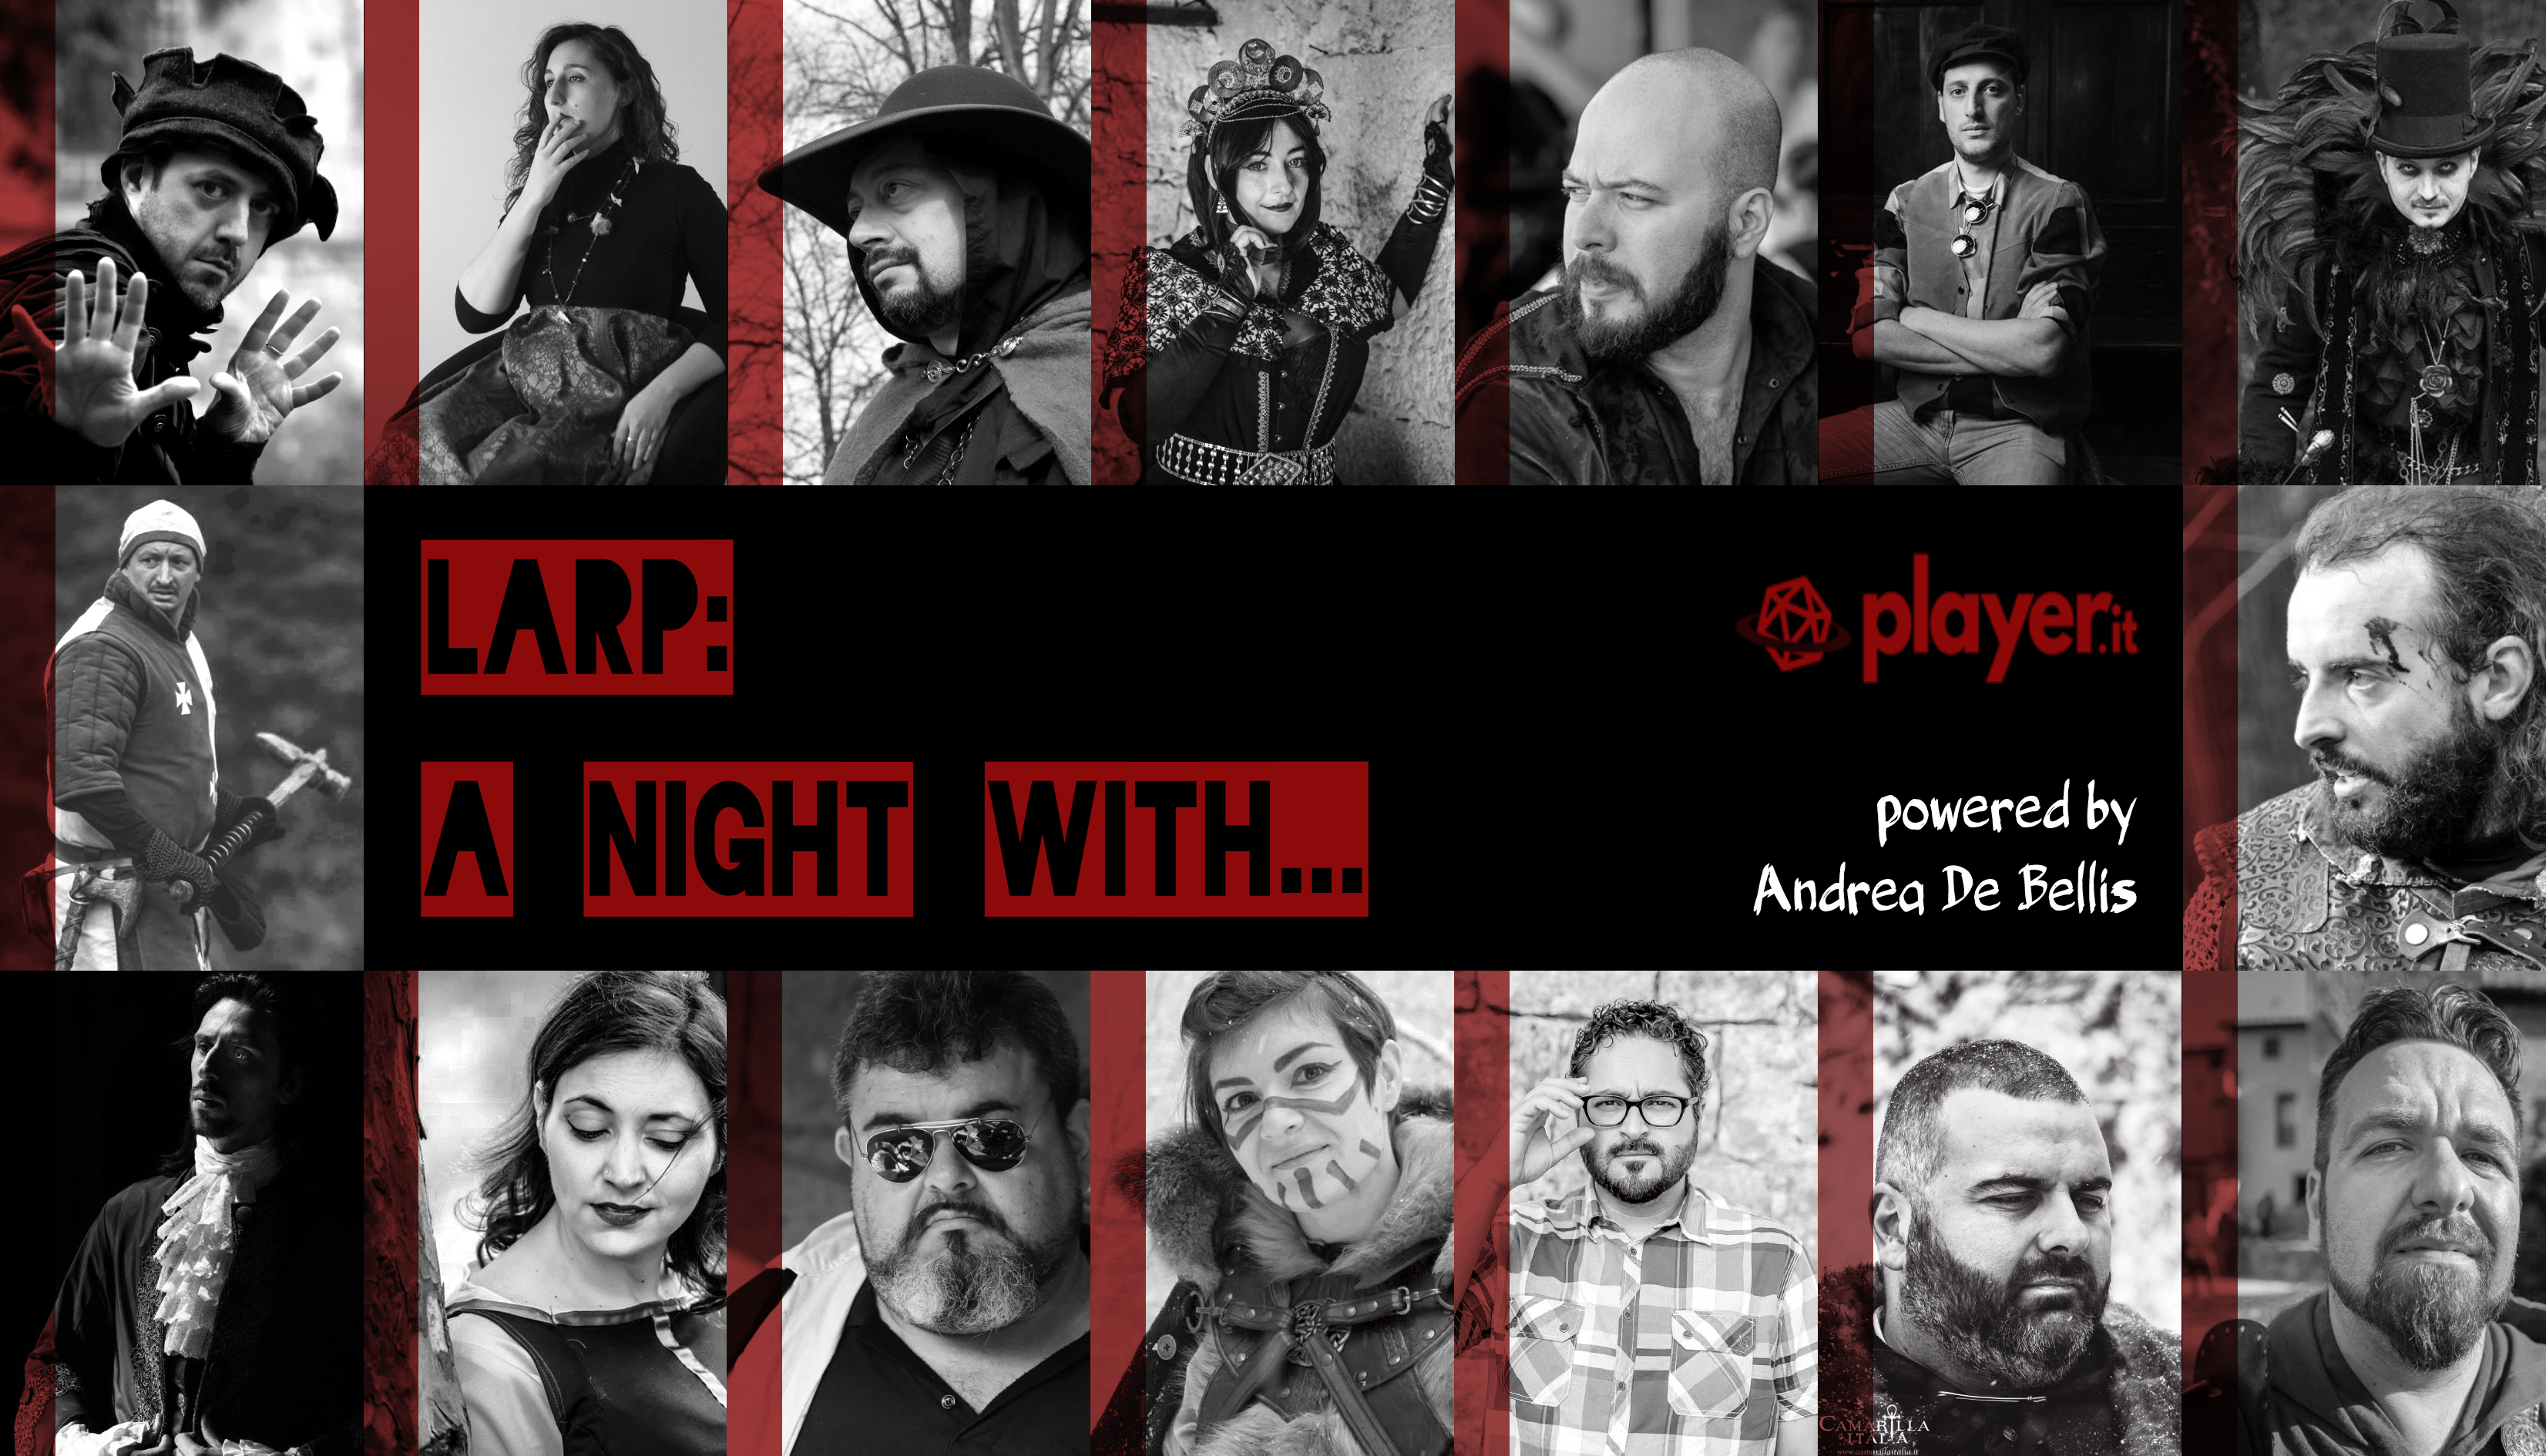 LARP a Night With...